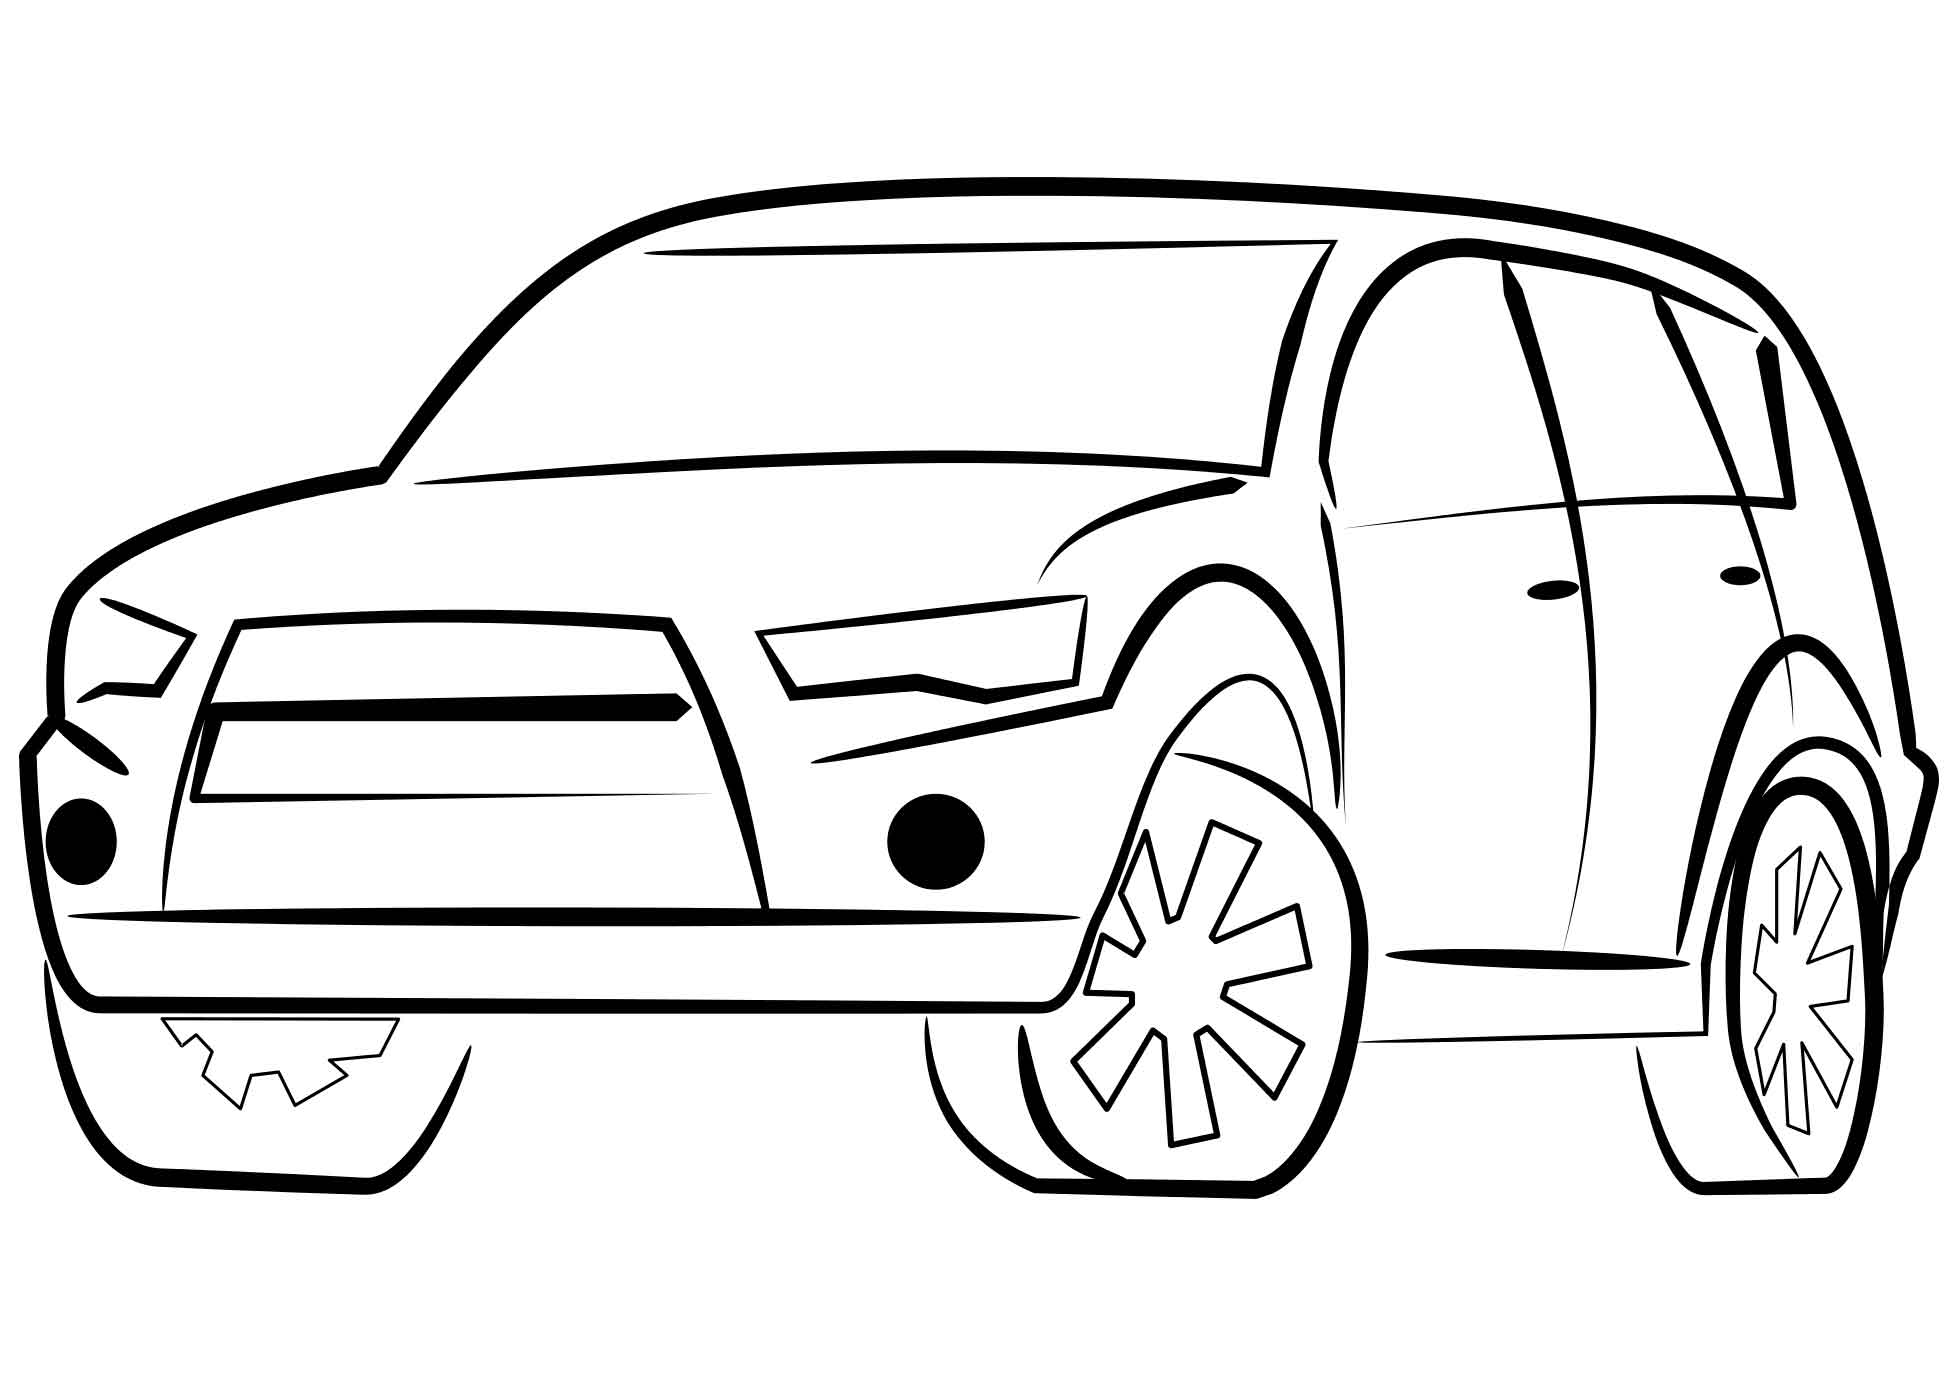 coloring car pictures to print coloring pages for boys cars printable coloring home to car pictures print coloring